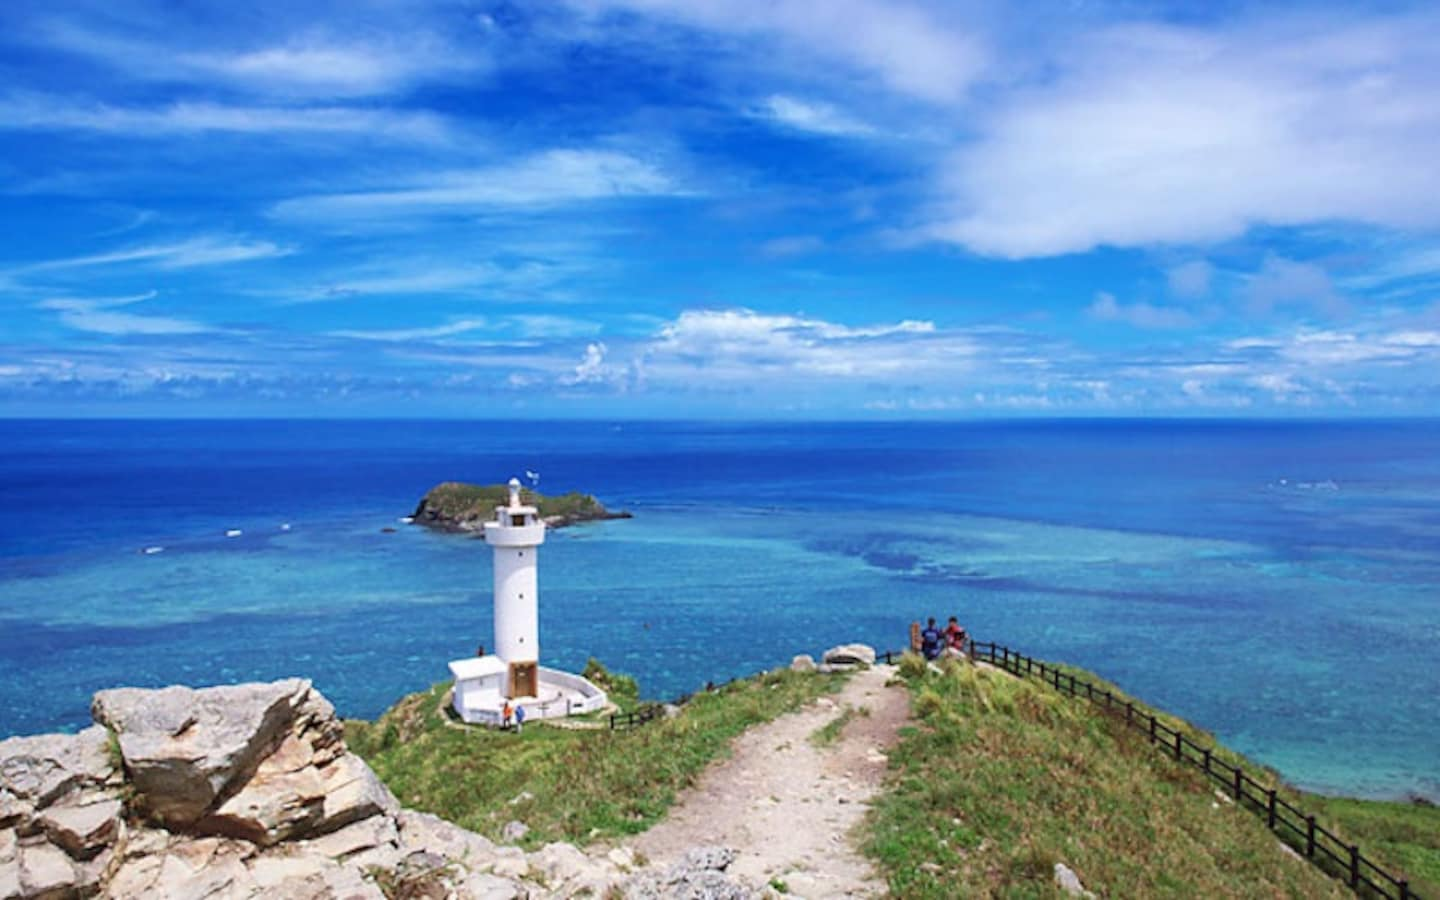 The Michelin Guide S Top 6 Beaches In Okinawa All About